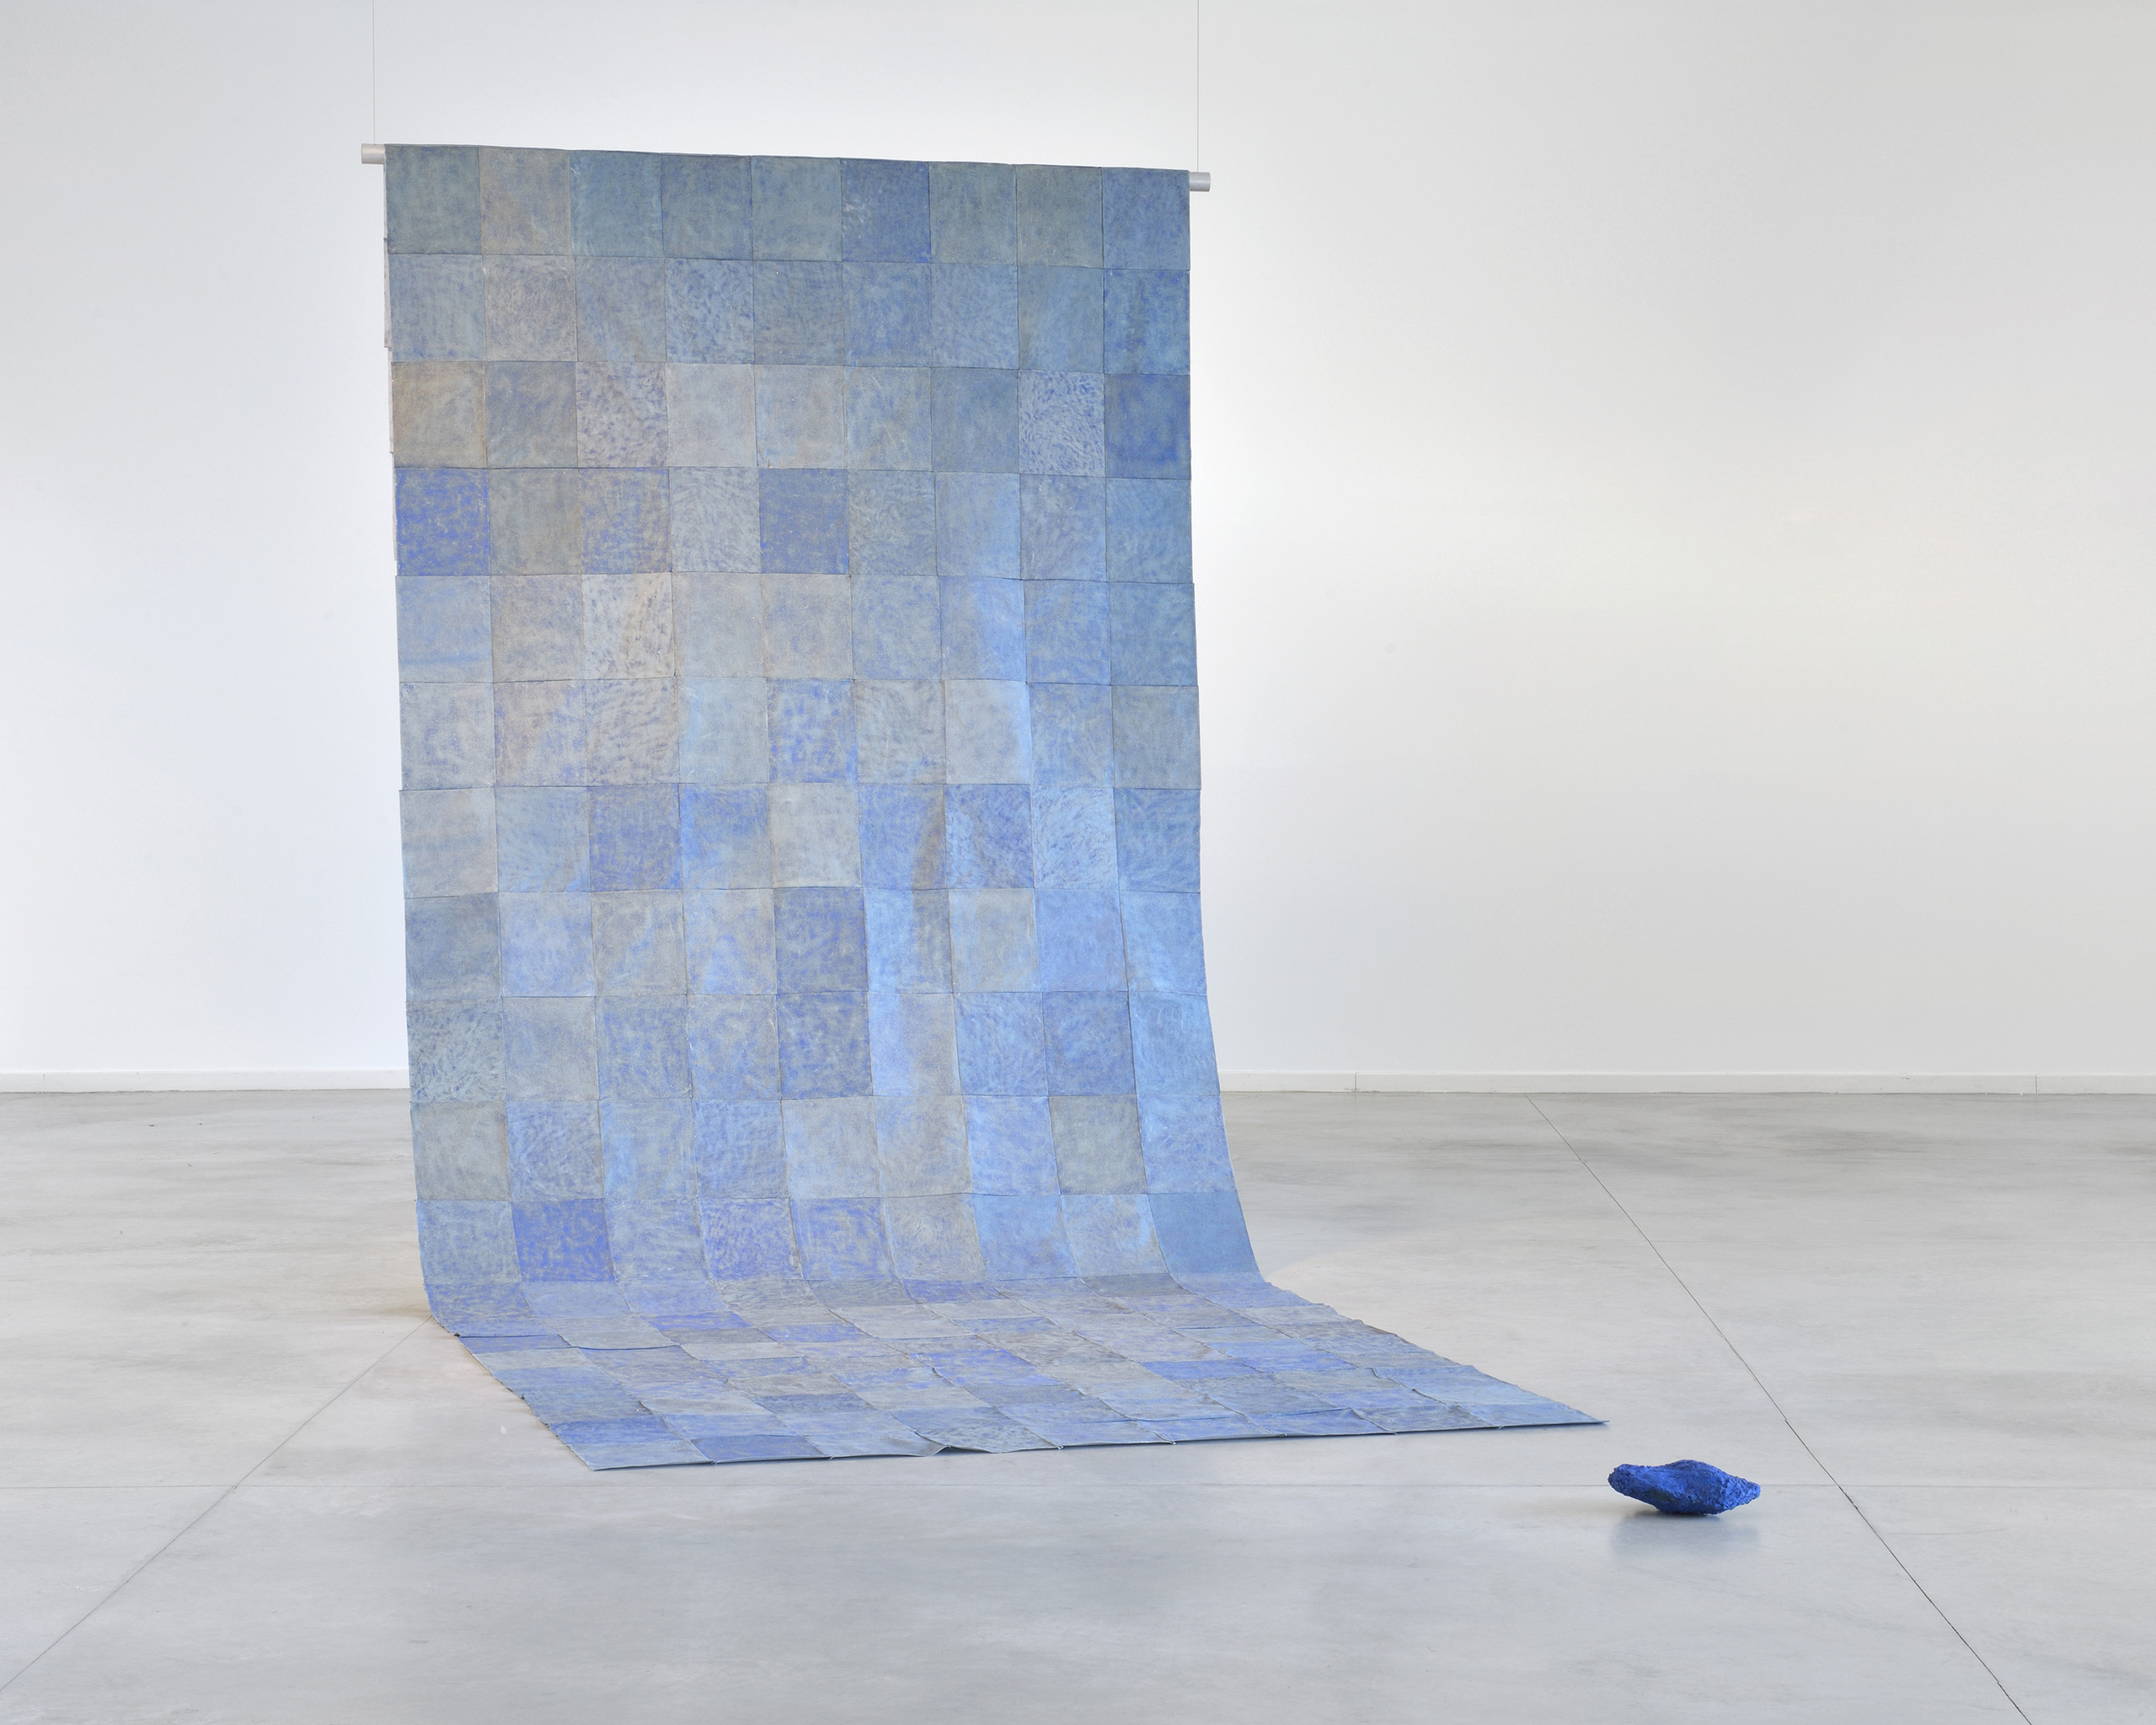 A floor to ceiling contemporary installation of blue square sheets patched together into a long panel that hangs down from two wires and partly rests flat on the floor. A dark blue object lays nearby.